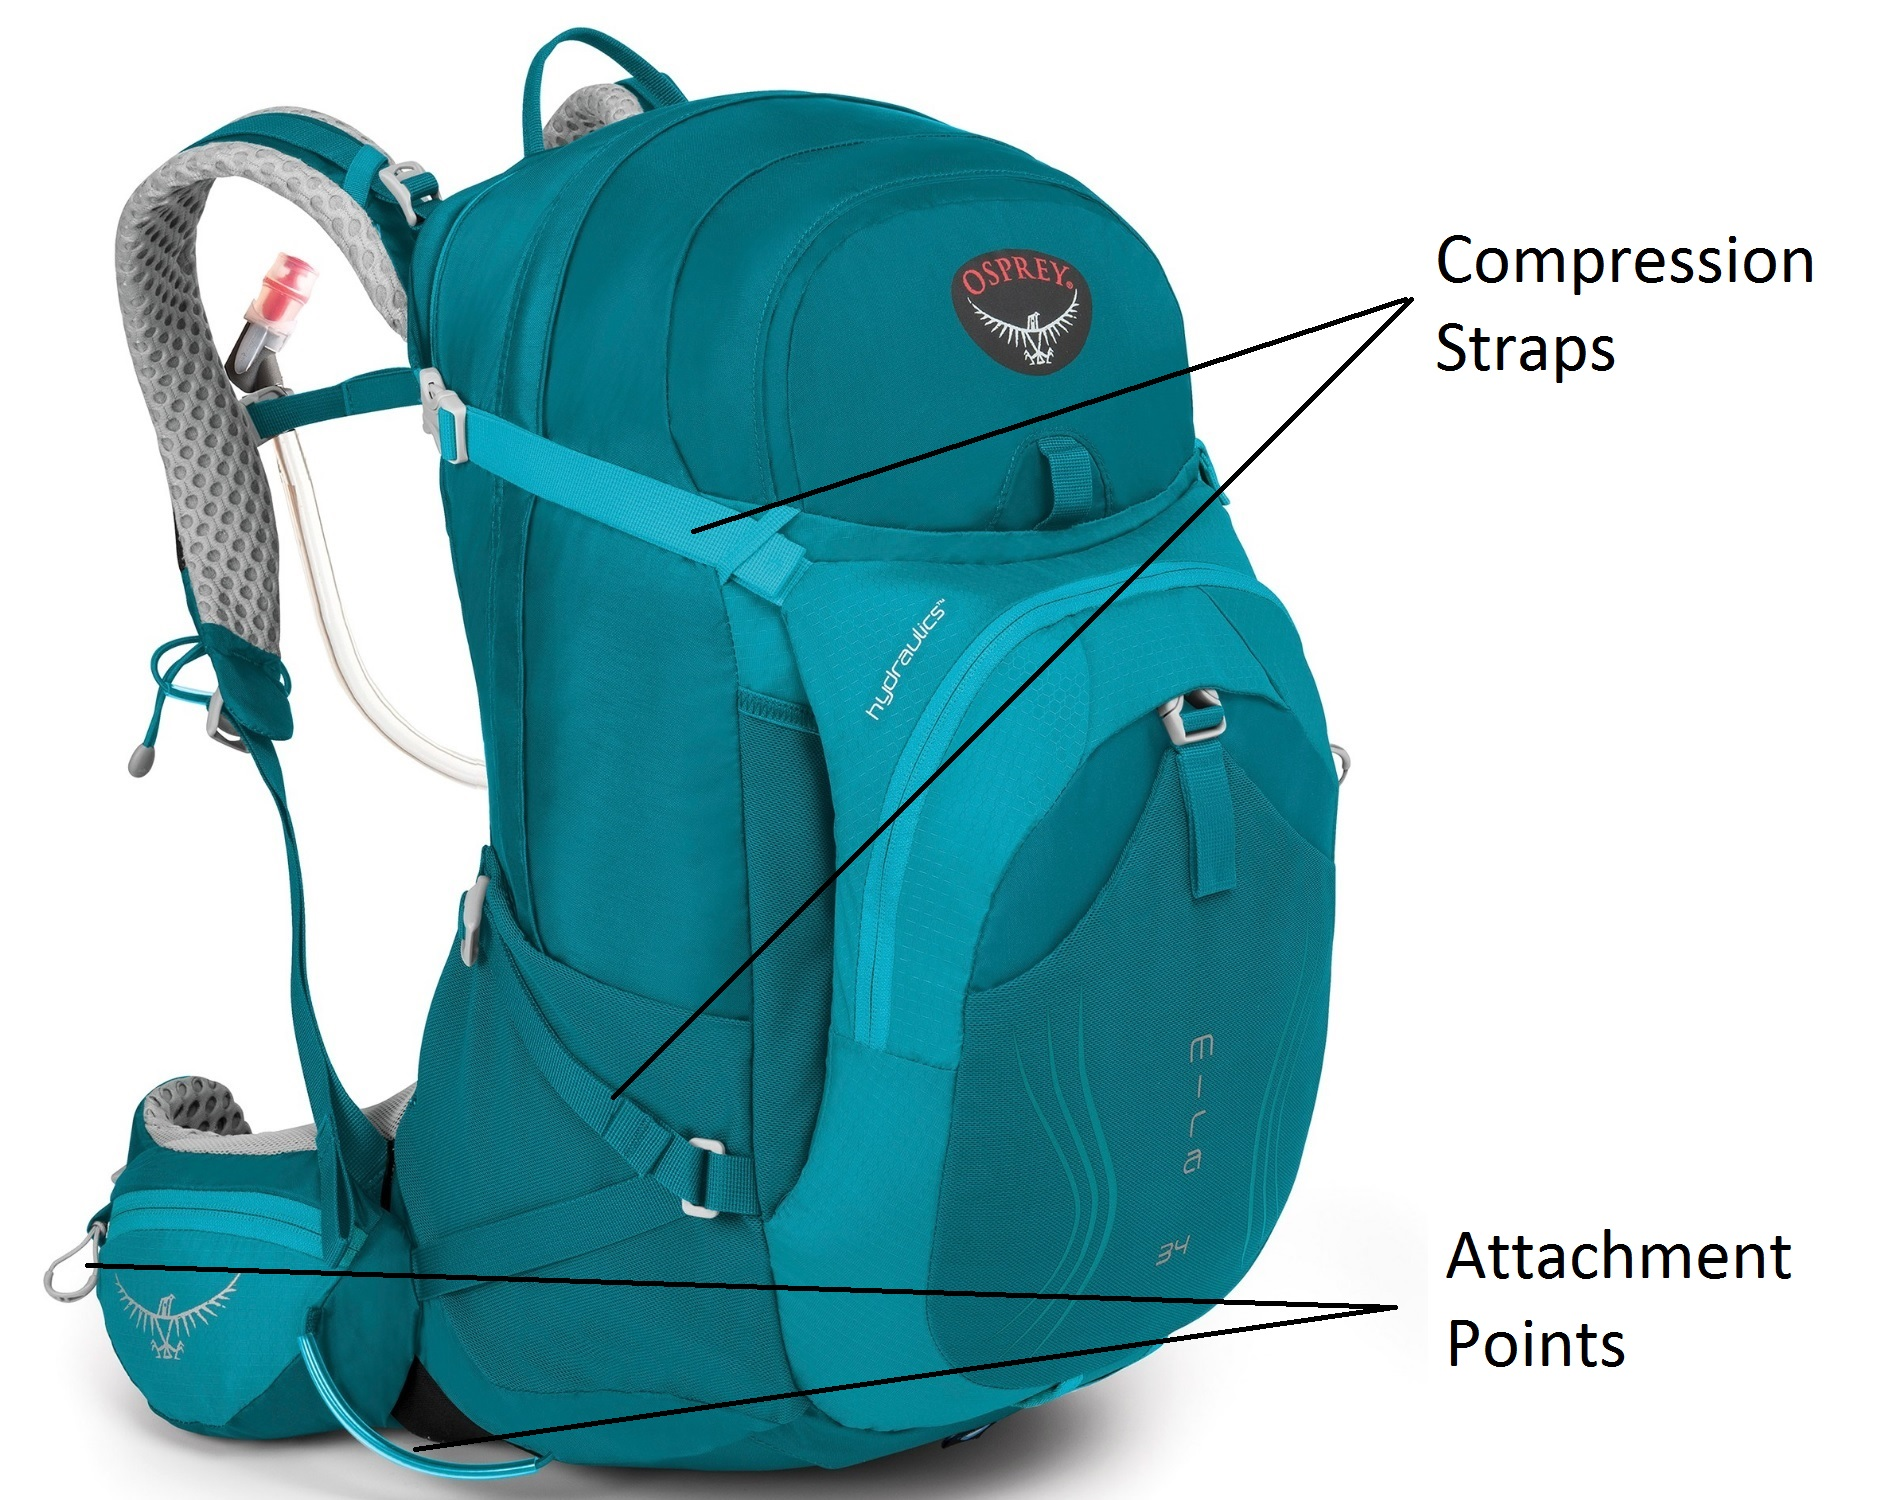 Attachment Points and Compression Straps on Women's Backpacks